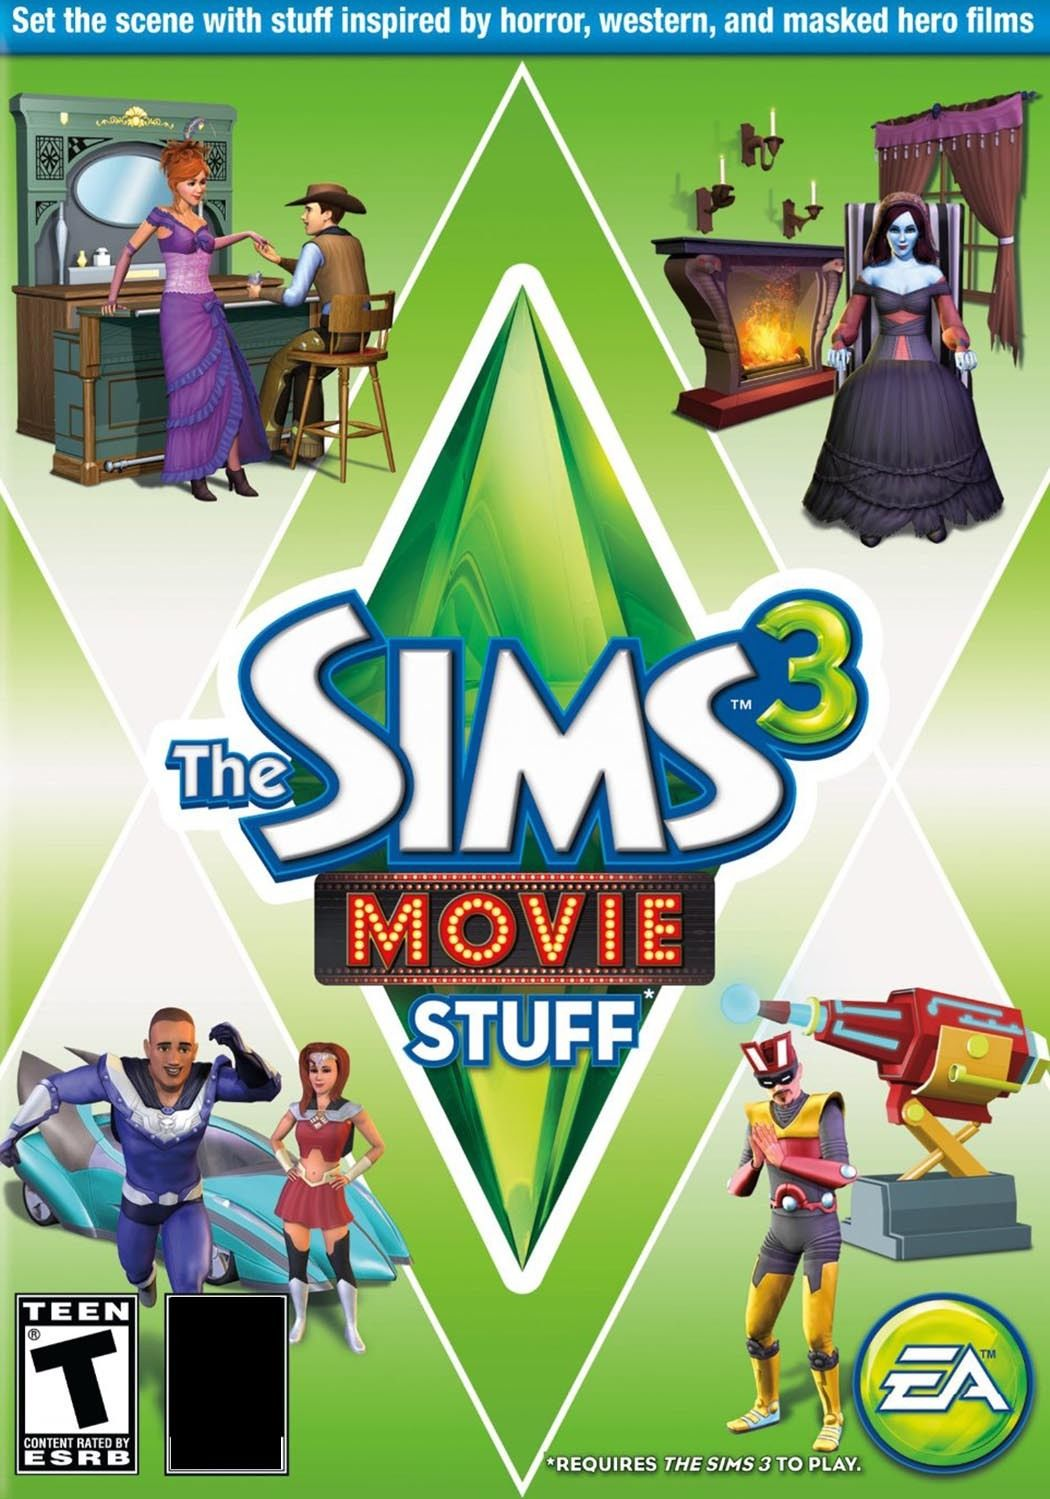 THE SIMS 3 MOVIE STUFF EXPANSION PACK